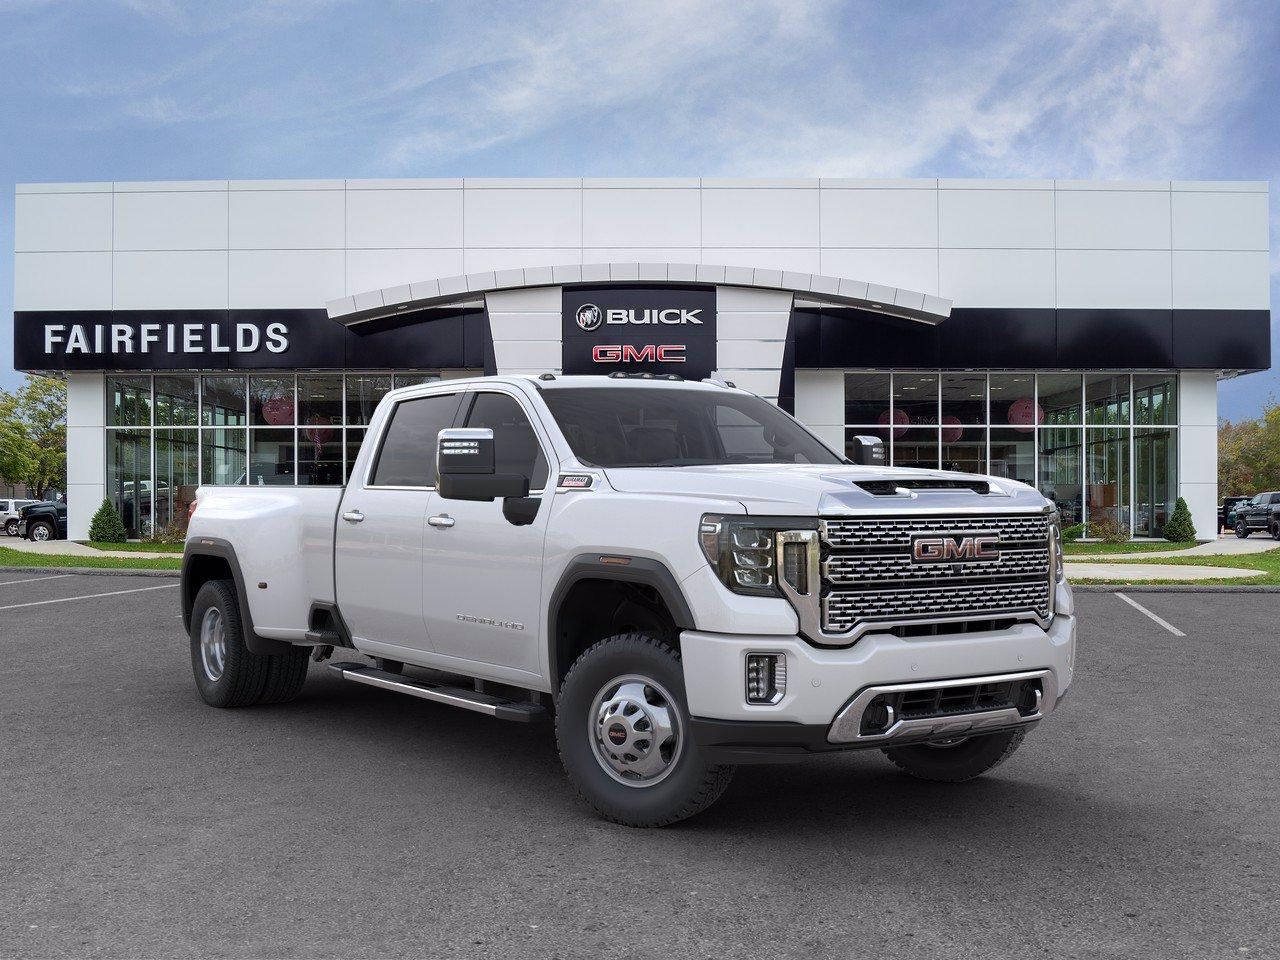 2020 GMC Sierra 3500 Crew Cab 4x4, Pickup #G20475 - photo 1